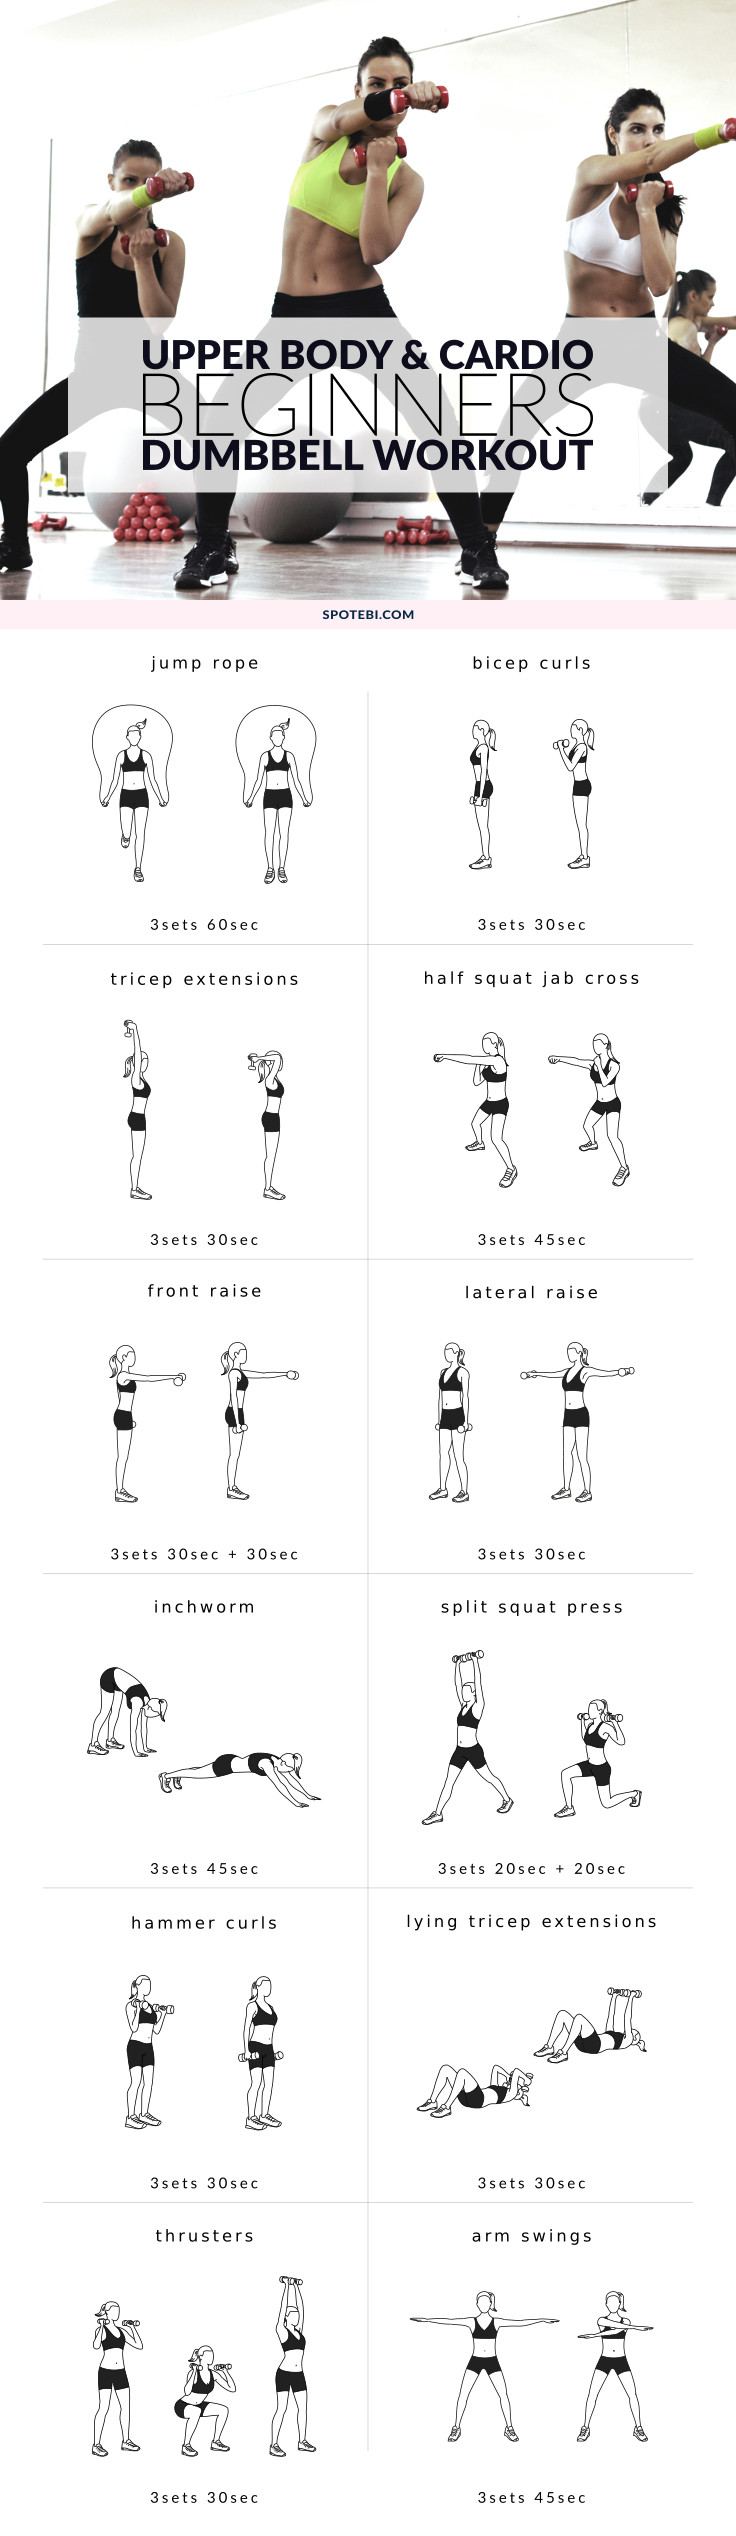 Slim Down Your Arms And Sculpt Shoulders With This Upper Body Beginners Workout For Women